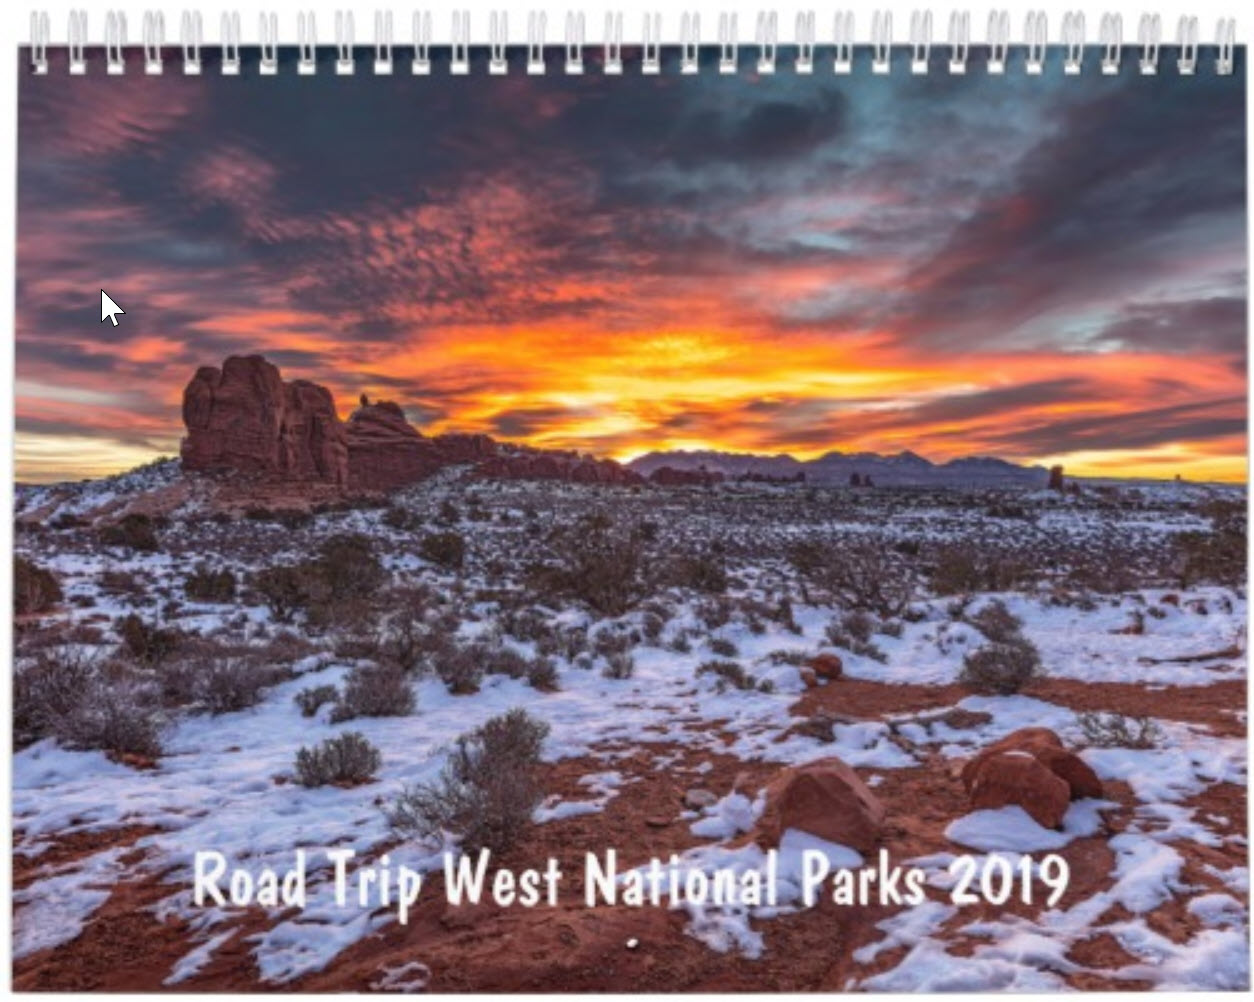 Road Trip West National Parks 2019